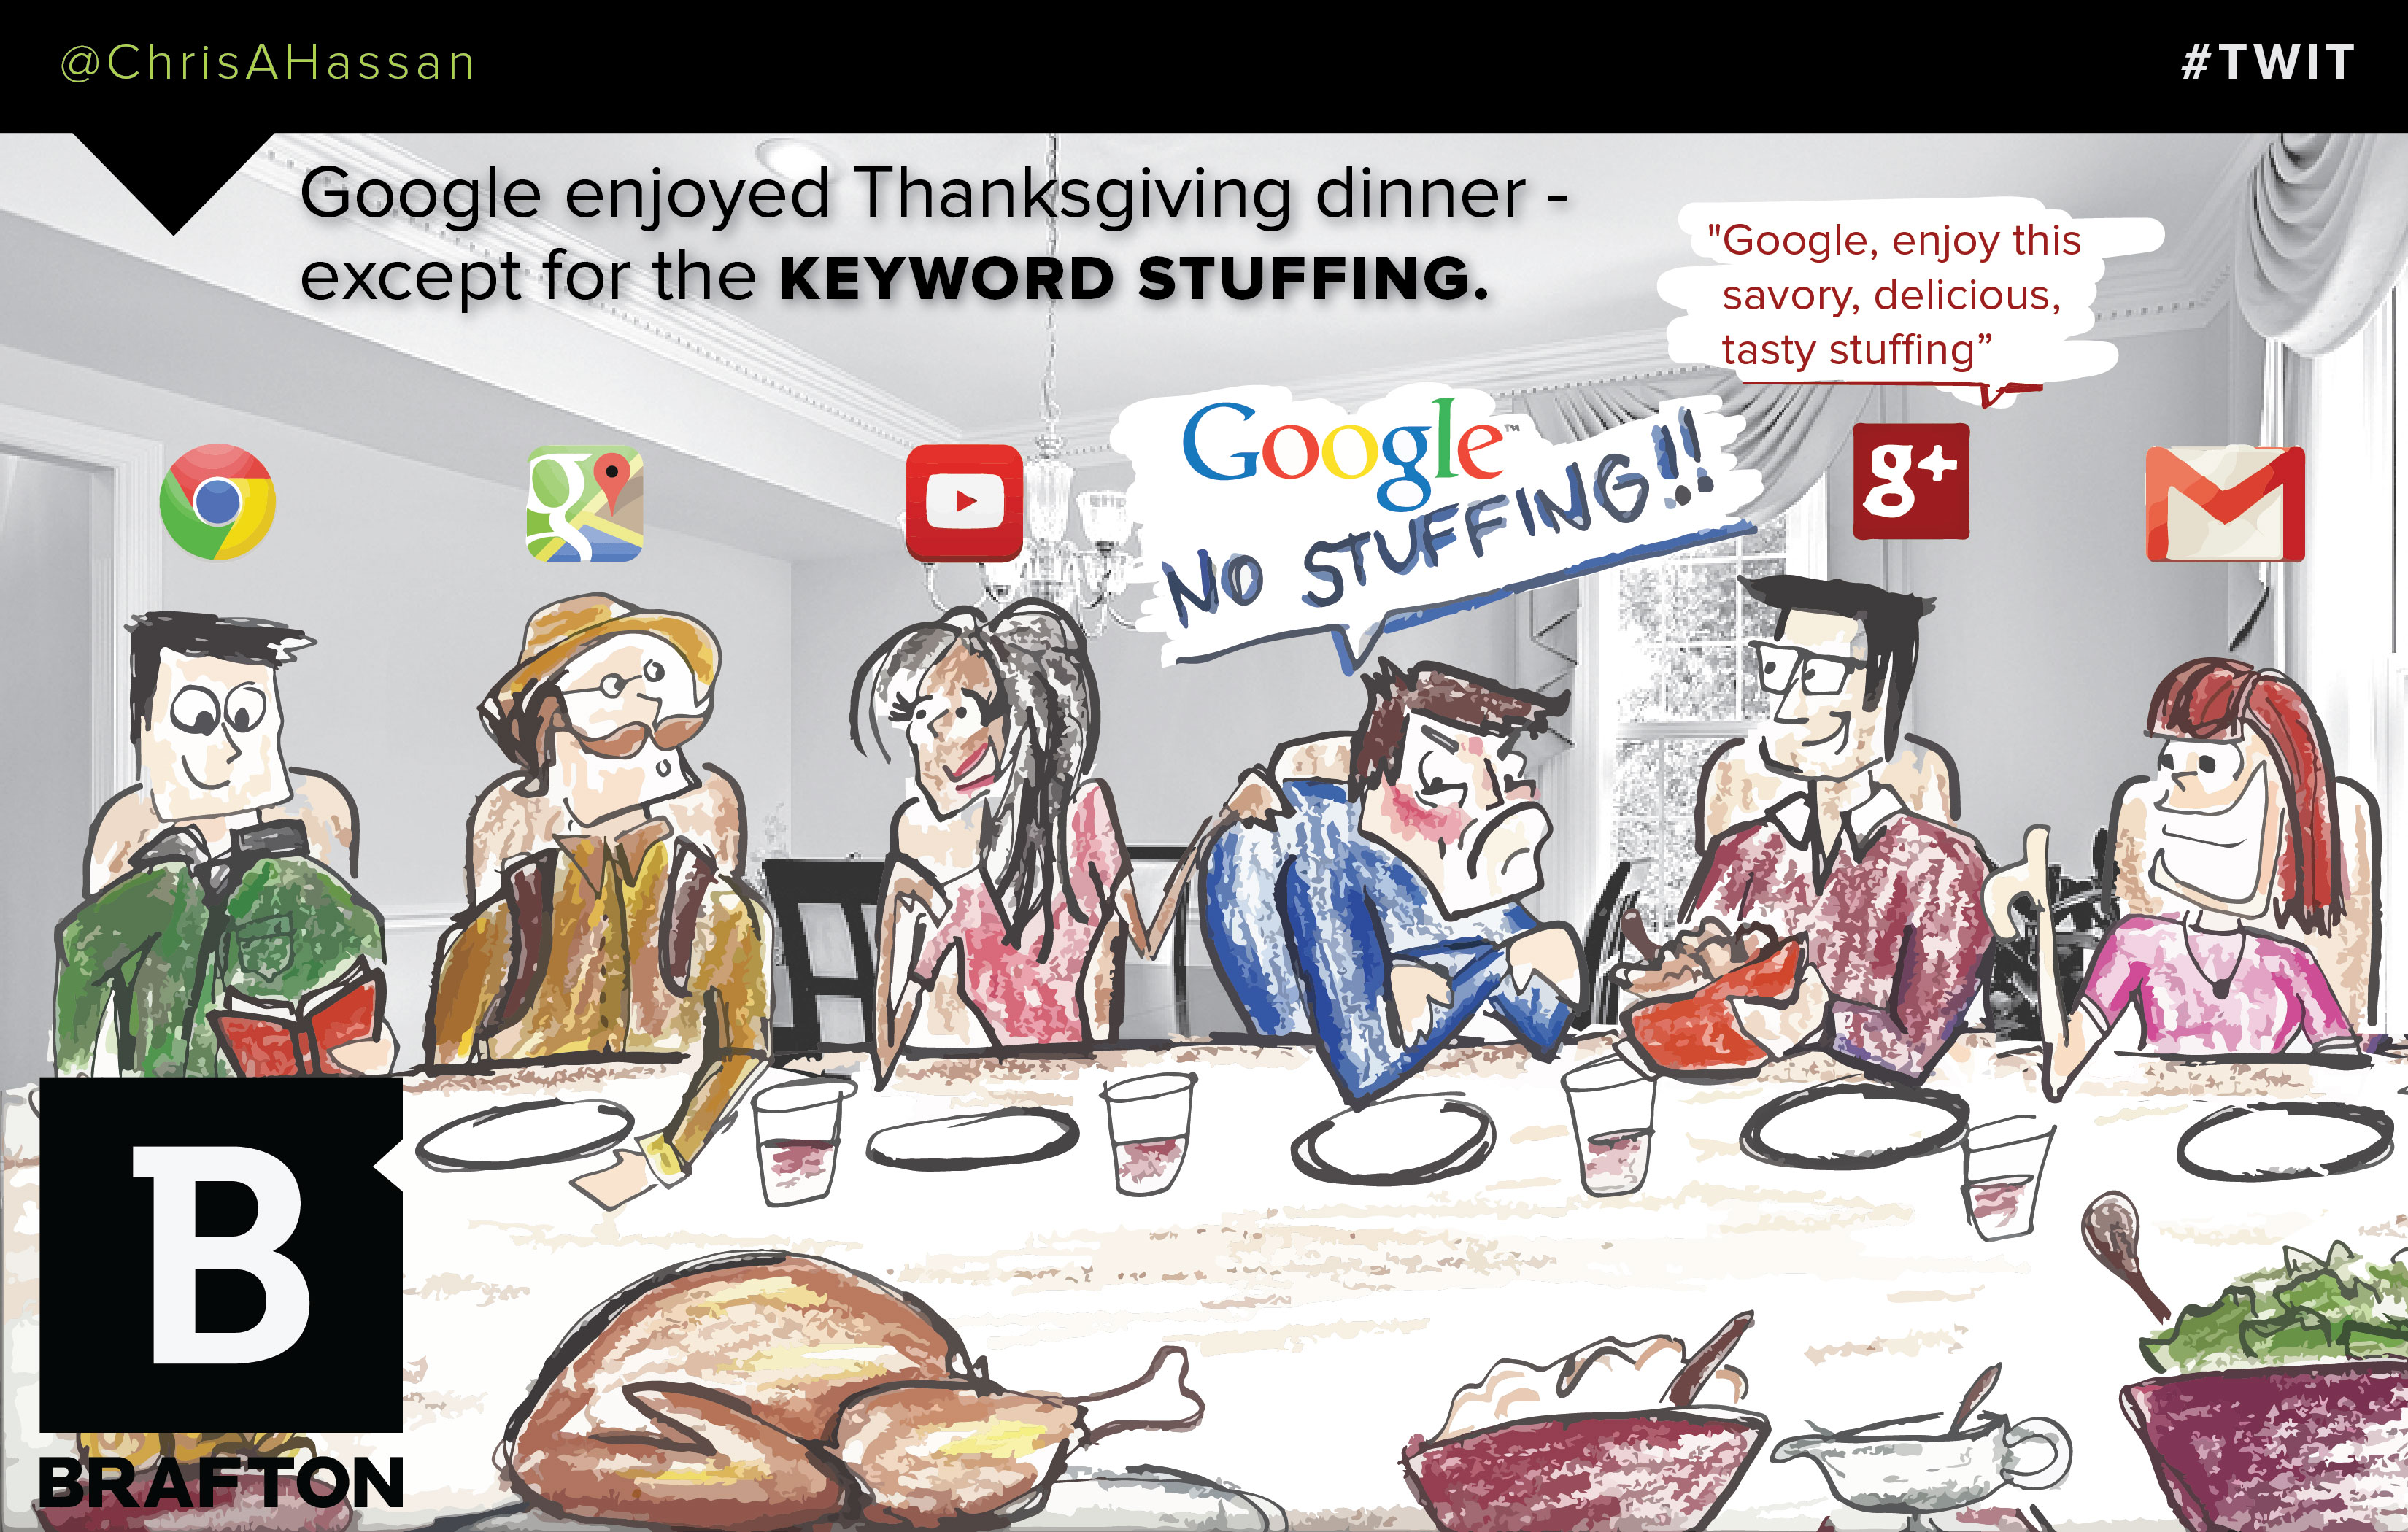 TWIT_11.18.2014_ThanksgivingStuffing-01